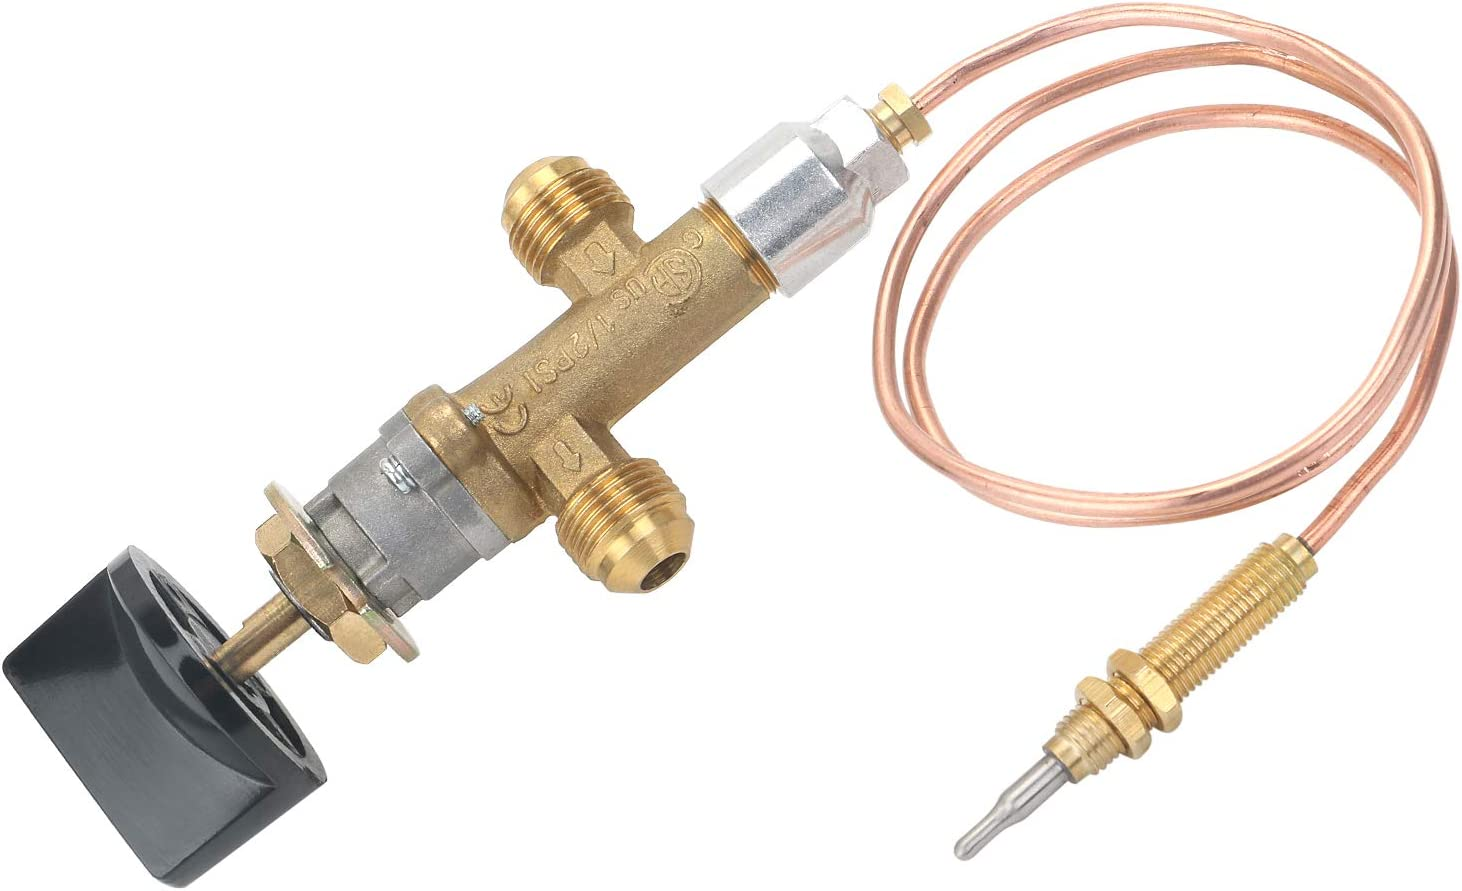 """STYDDI LPG Propane Gas fire Pit Control Safety Valve with Thermocouple Heater Flame Failure Control Parts for Low Pressure Application, 3/8"""" Flare Inlet and Outlet"""